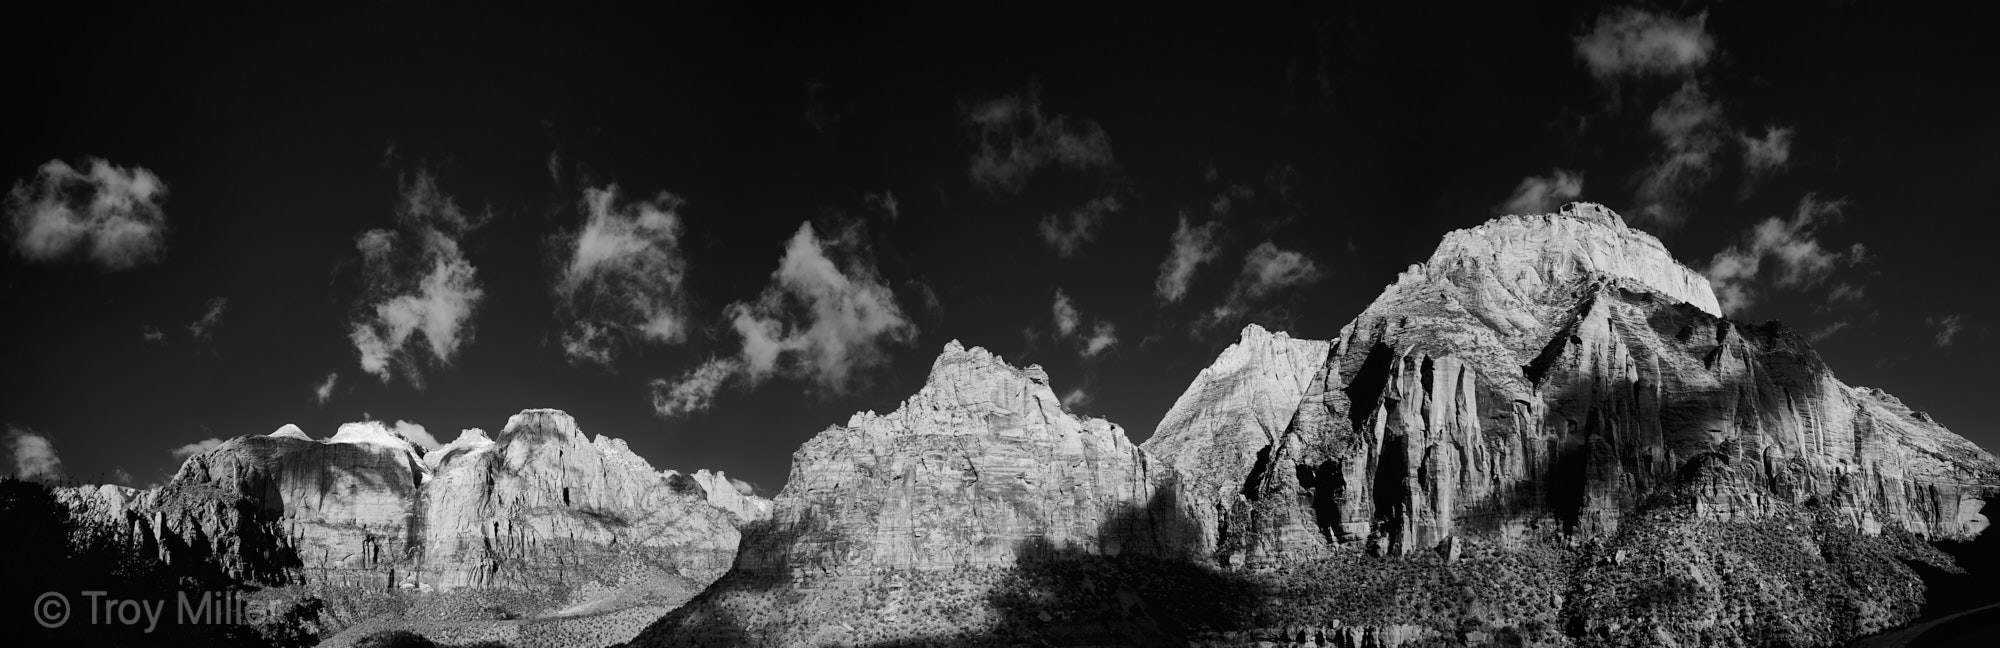 Zion Infrared pano shot with the Nikon Z6